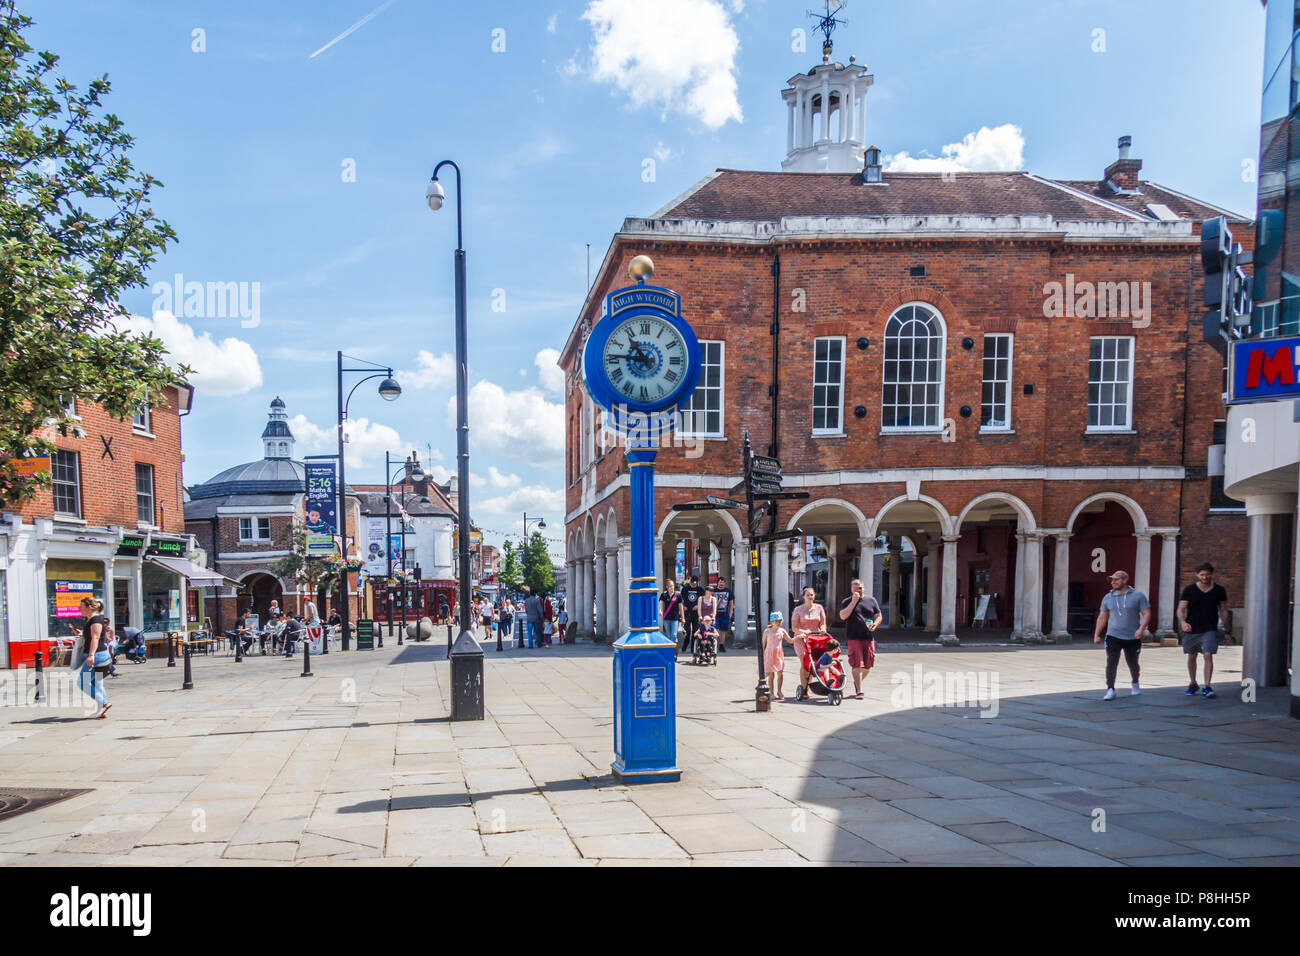 High Wycombe, UK - 3rd June 2018: The Millennium clock. Erected in 2000 - Stock Image